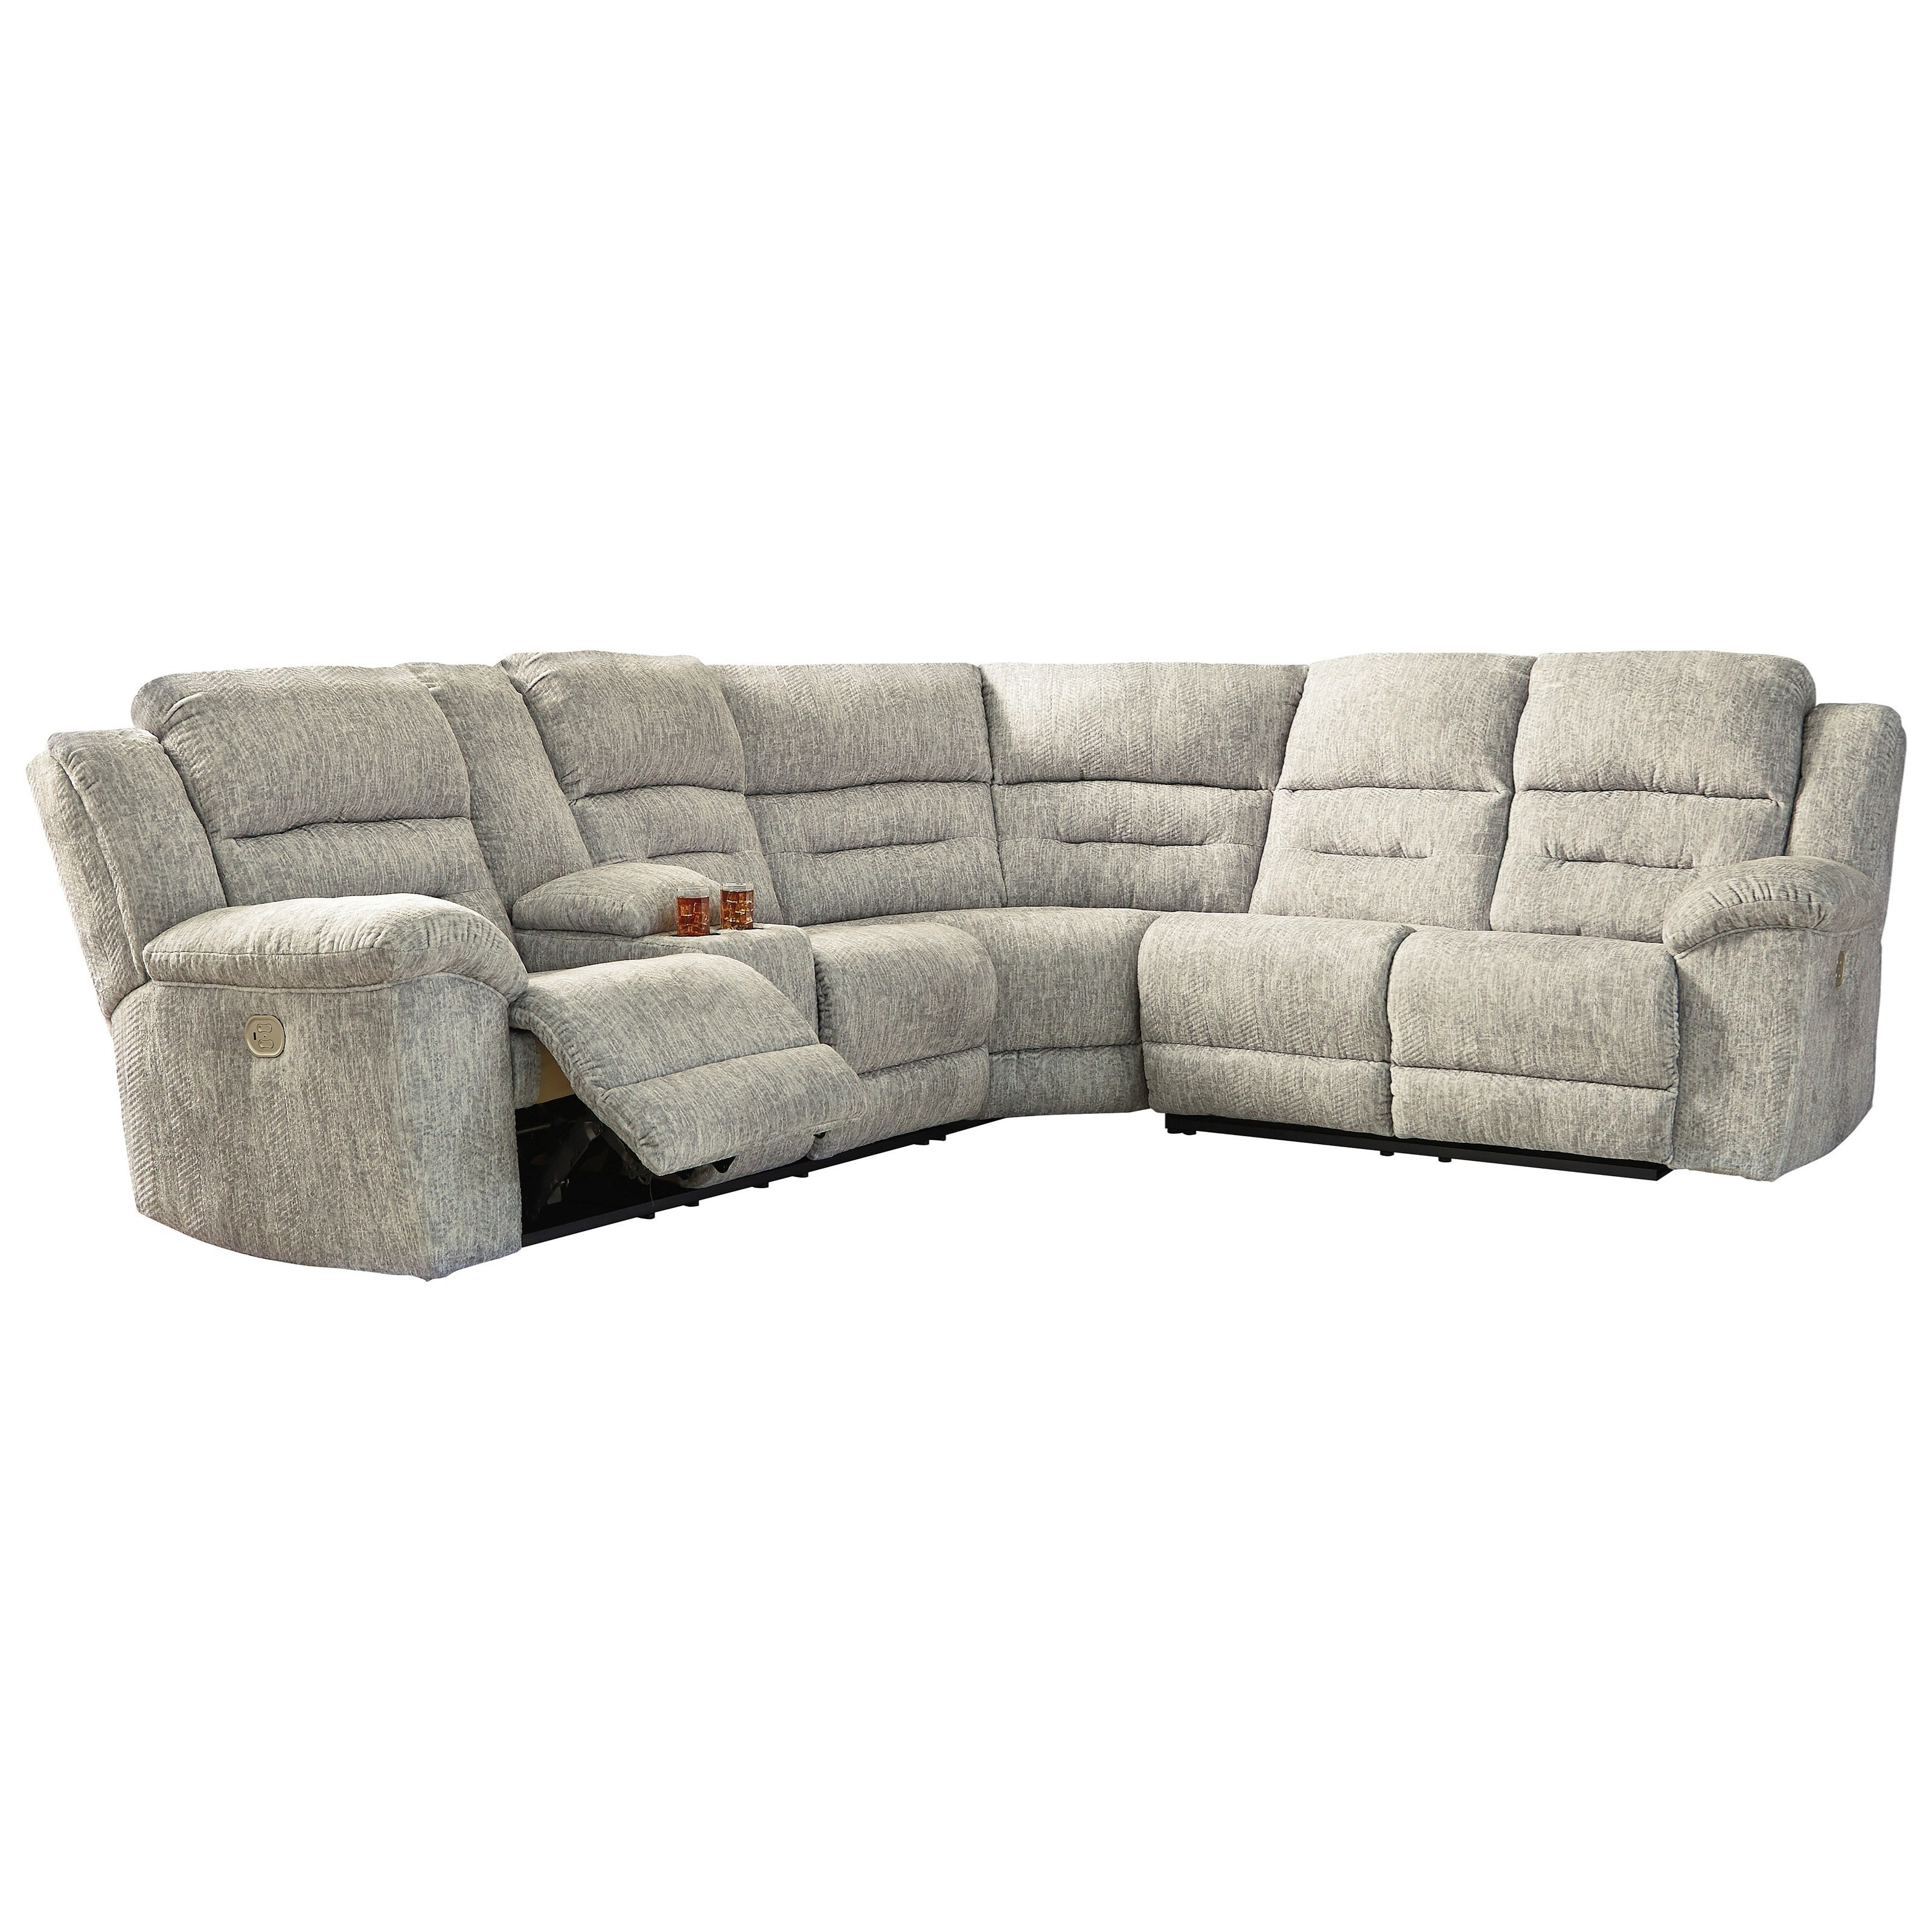 Signature Design By Ashley Family Den Power Reclining Sectional Royal Furniture Reclining Sectional Sofas